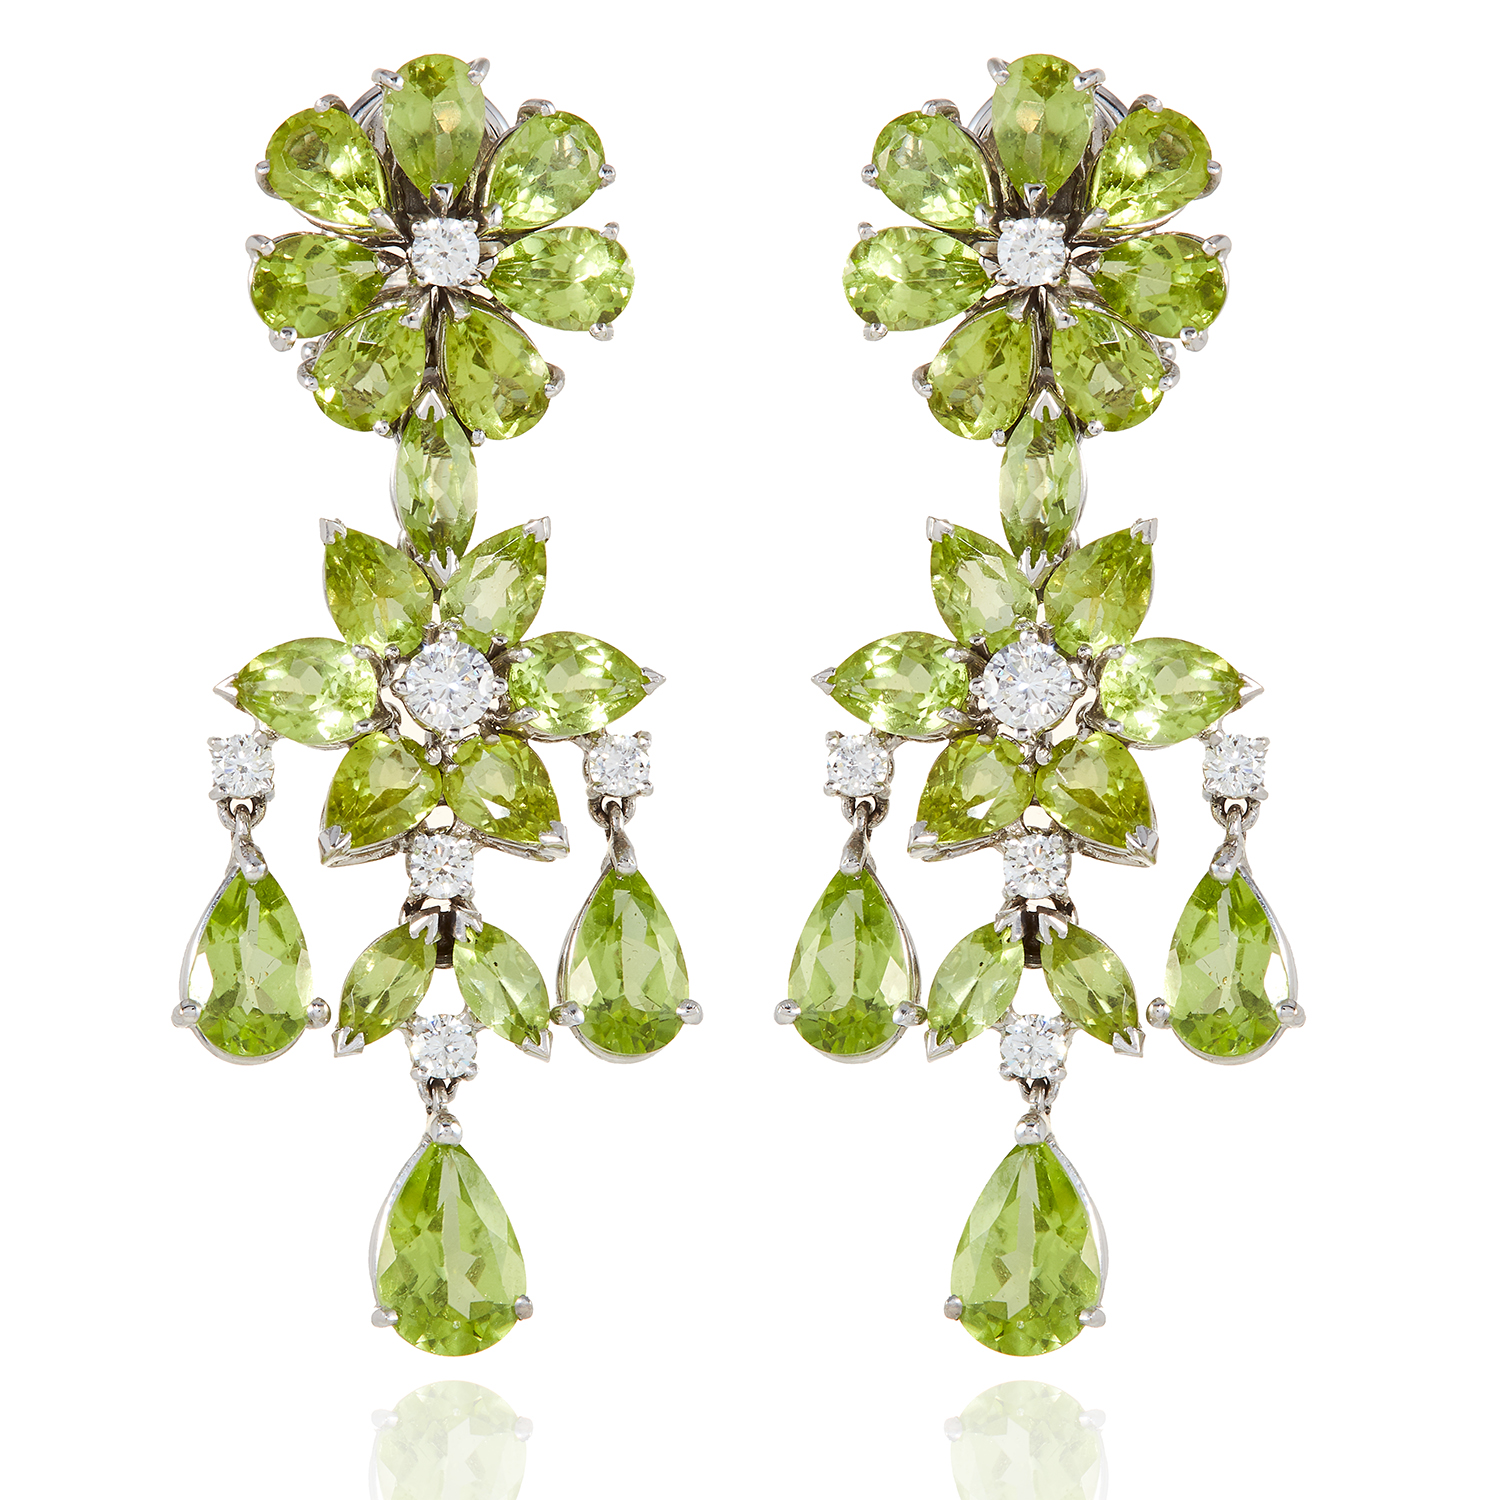 A PAIR OF PERIDOT AND DIAMOND EARRINGS in 18ct white gold, each of chandelier form, set with diamond